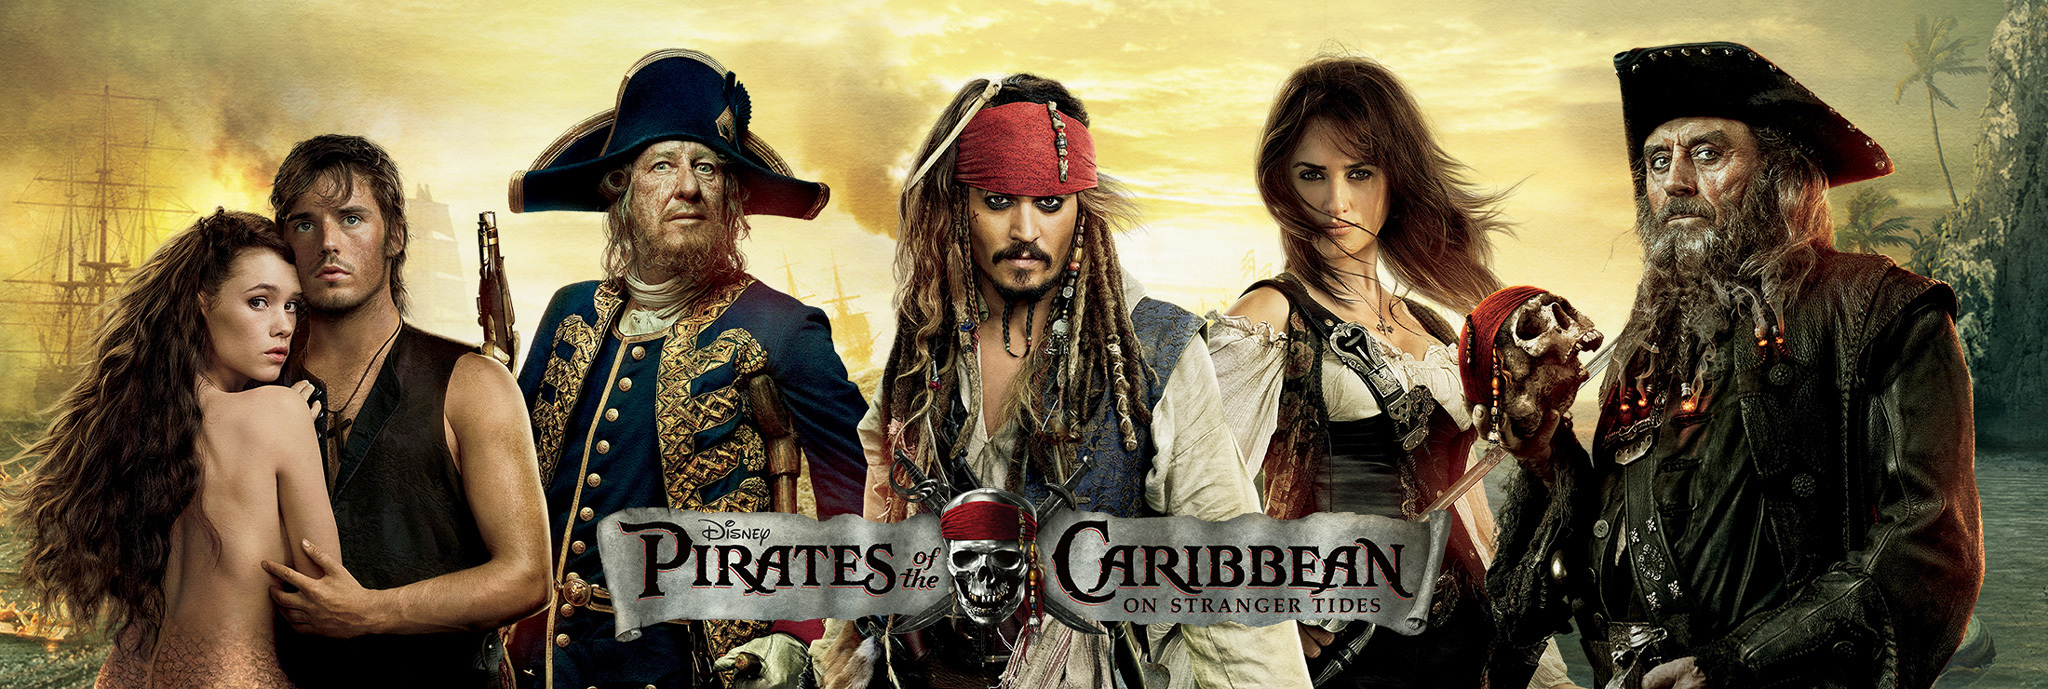 yo ho ho! let's restart! (pirates of the caribbean: on stranger